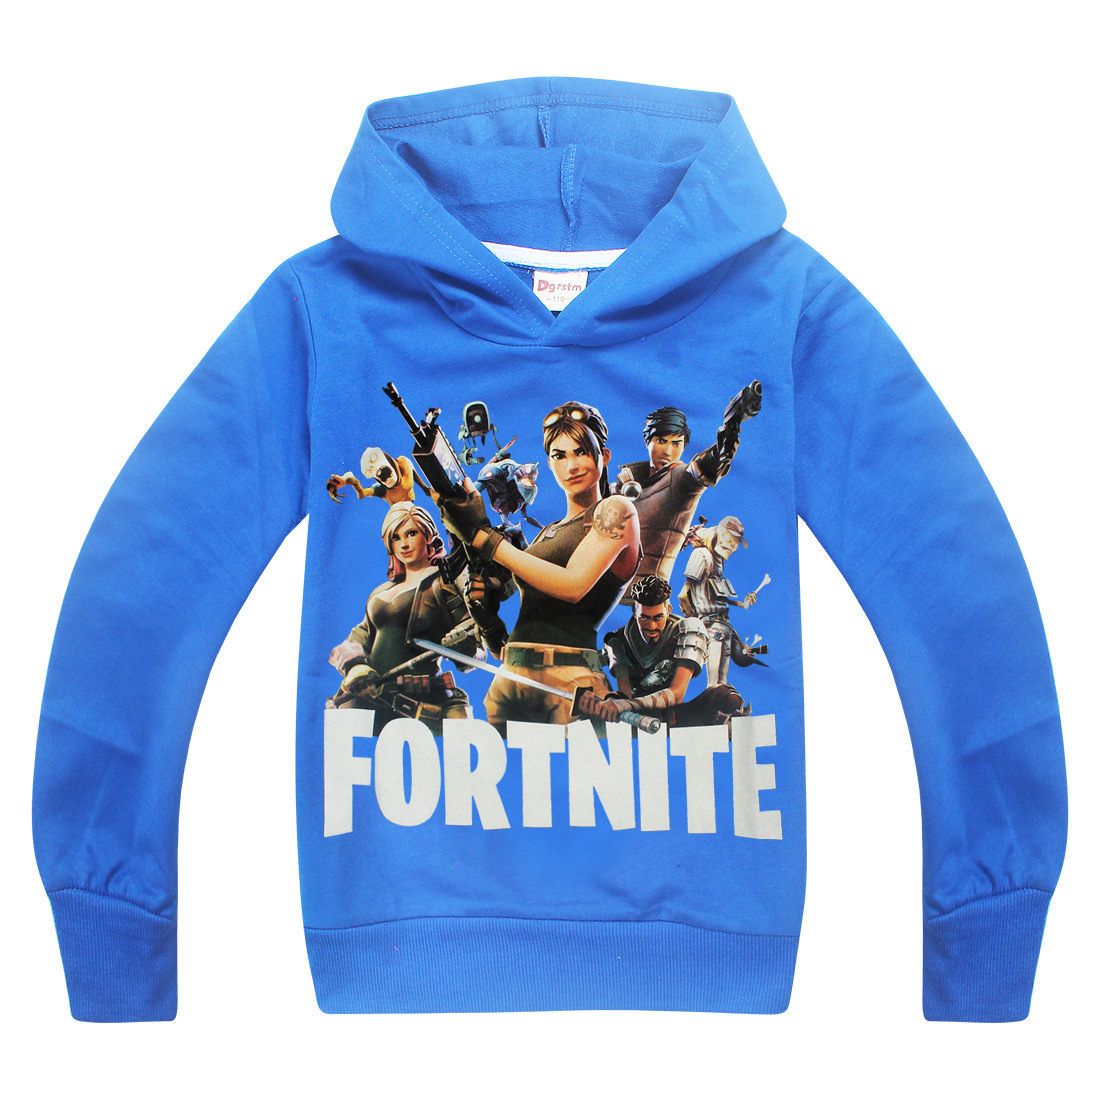 NEW fortnite New robloxSpring Baby Girl Cute T-shirts Cartoon Long Sleeve Lovely Tshirt for Girls Casual active kids top